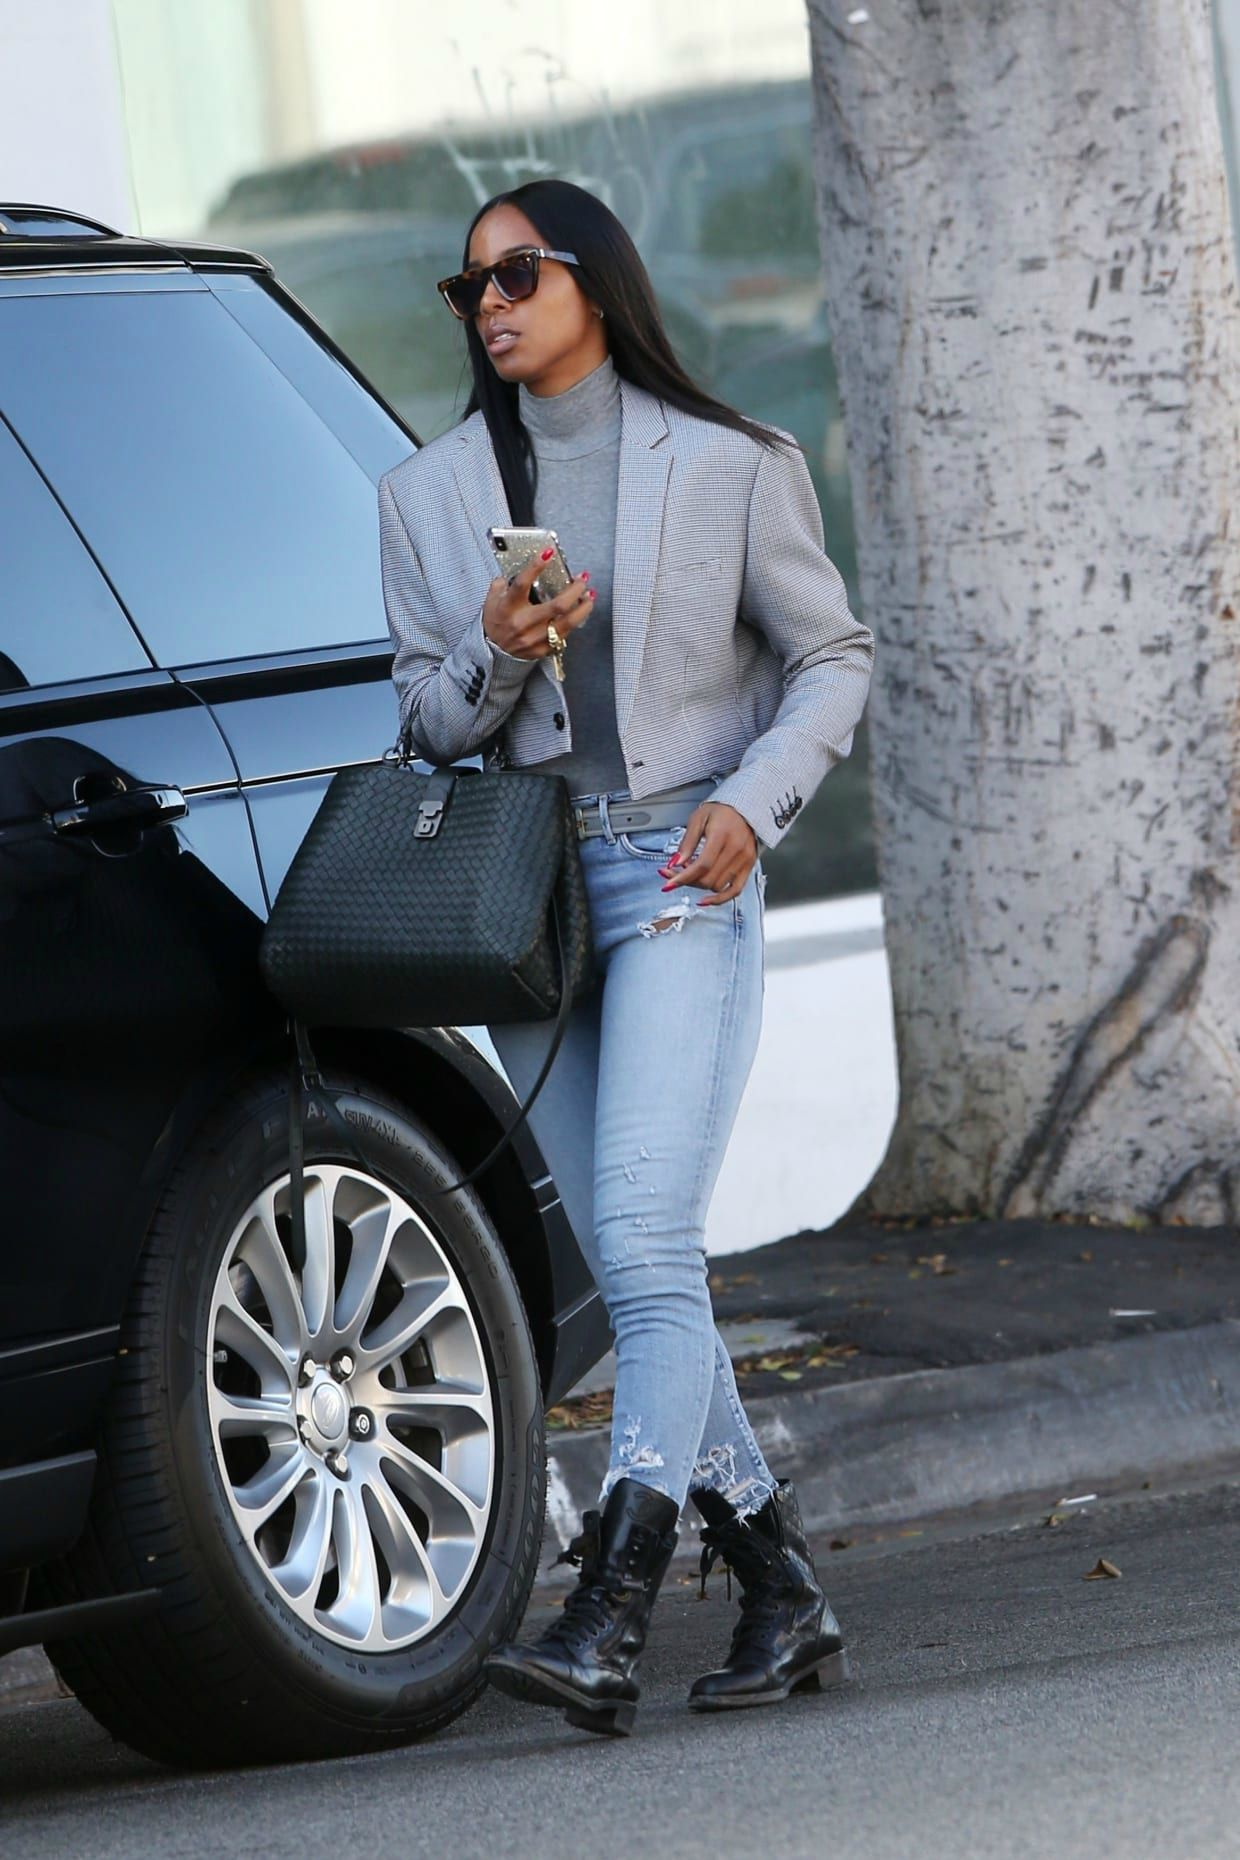 Tim Weatherspoon's wife Kelly coming out her car